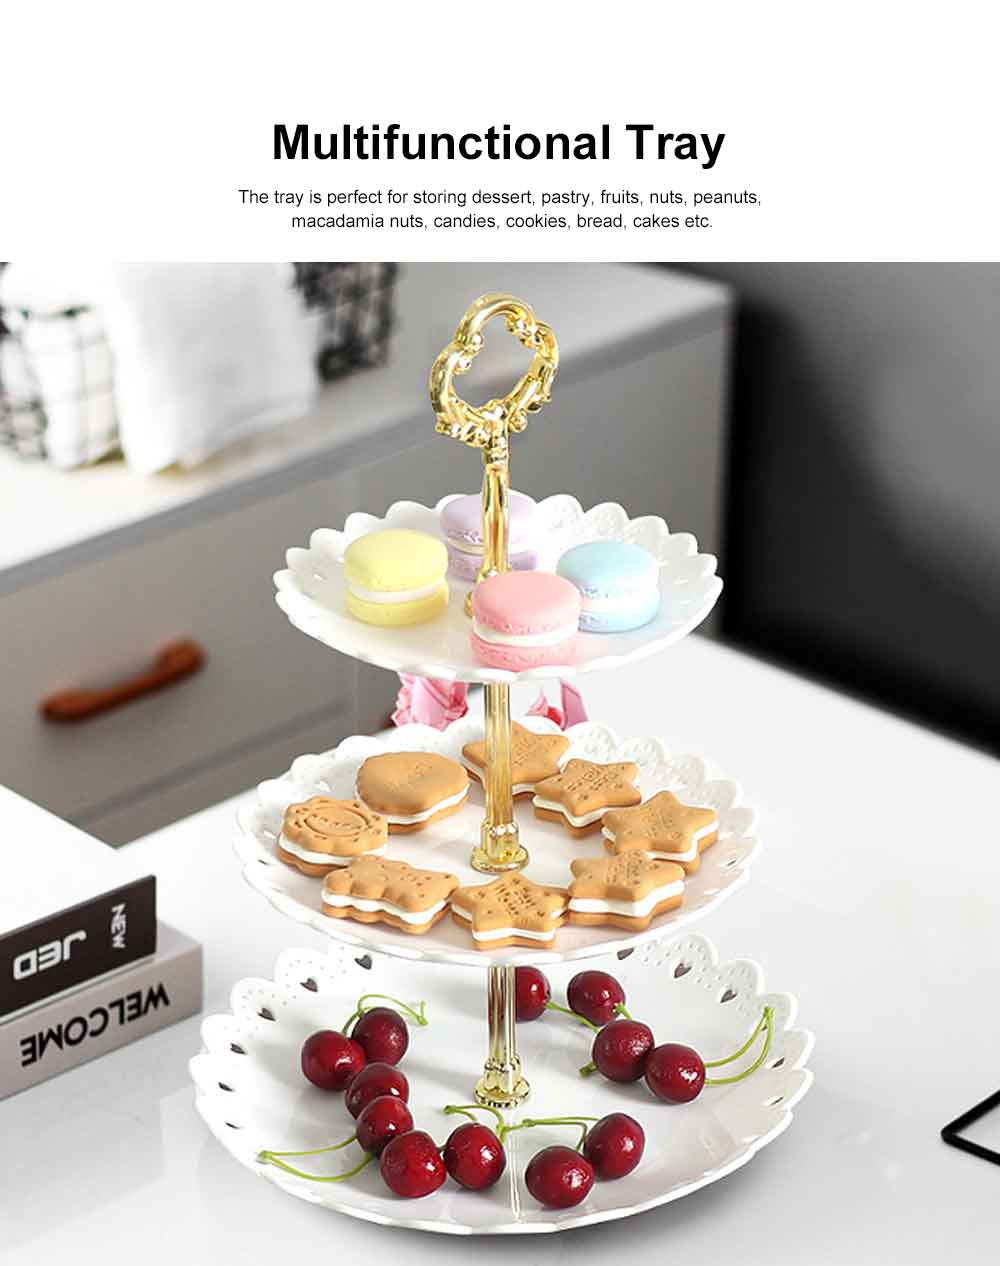 European-style Fruit Tray with 3 Layers Creative Petal Shape, Home Use Storage Tray for Dessert, Pastry Cake Nuts Fruits Tray 3 Layers 1